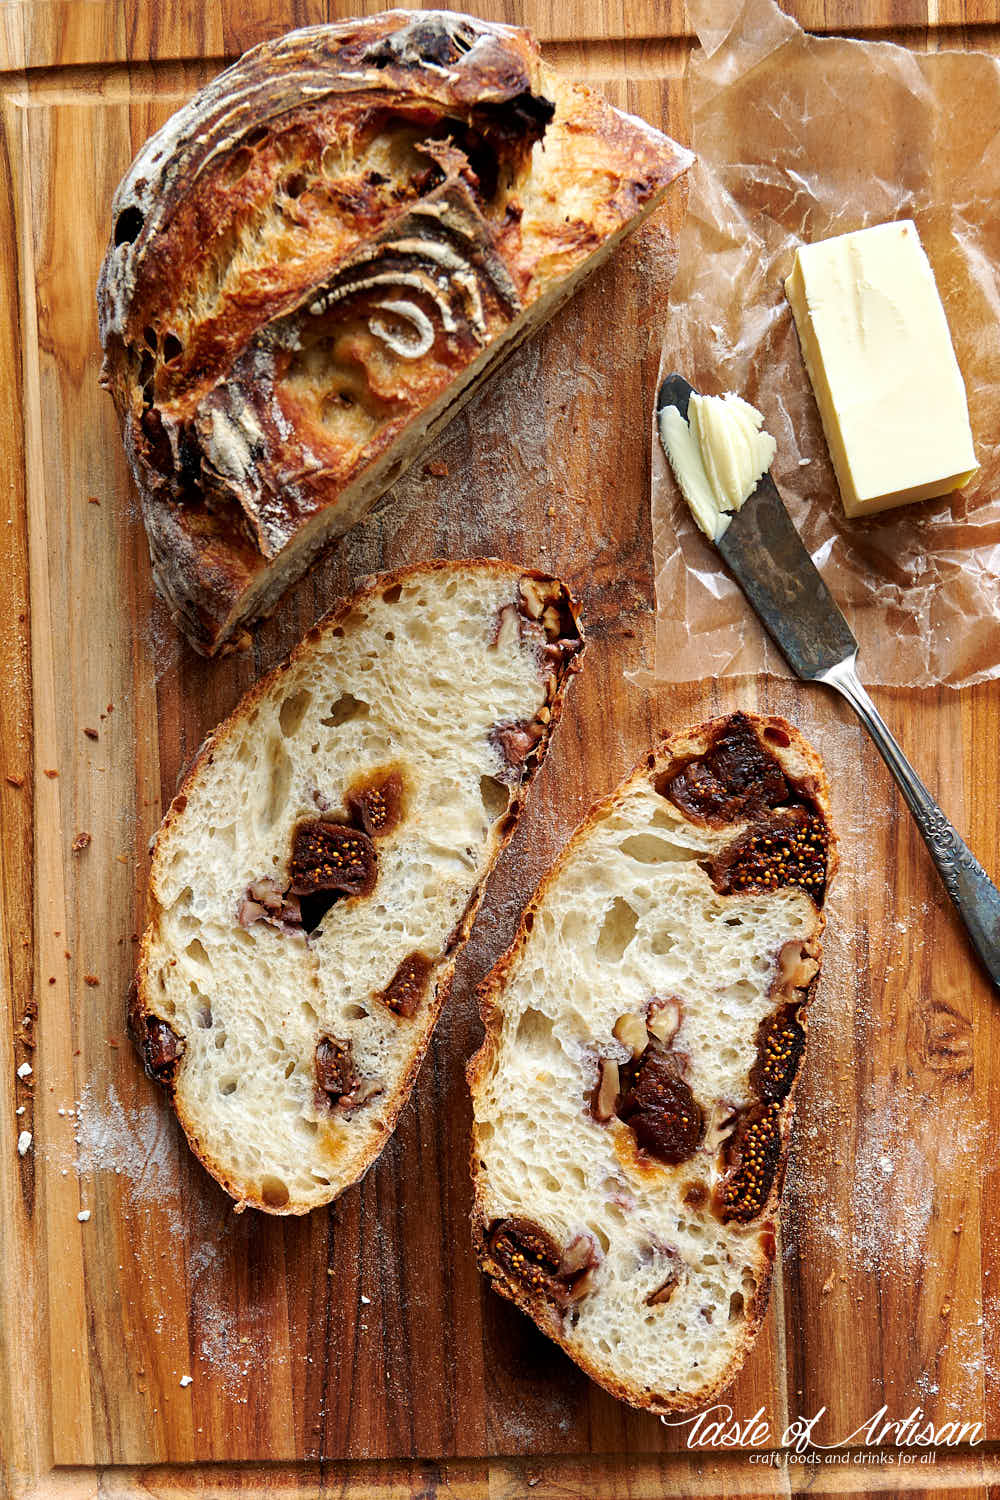 No knead sourdough bread with walnuts and date slices on a cutting board.